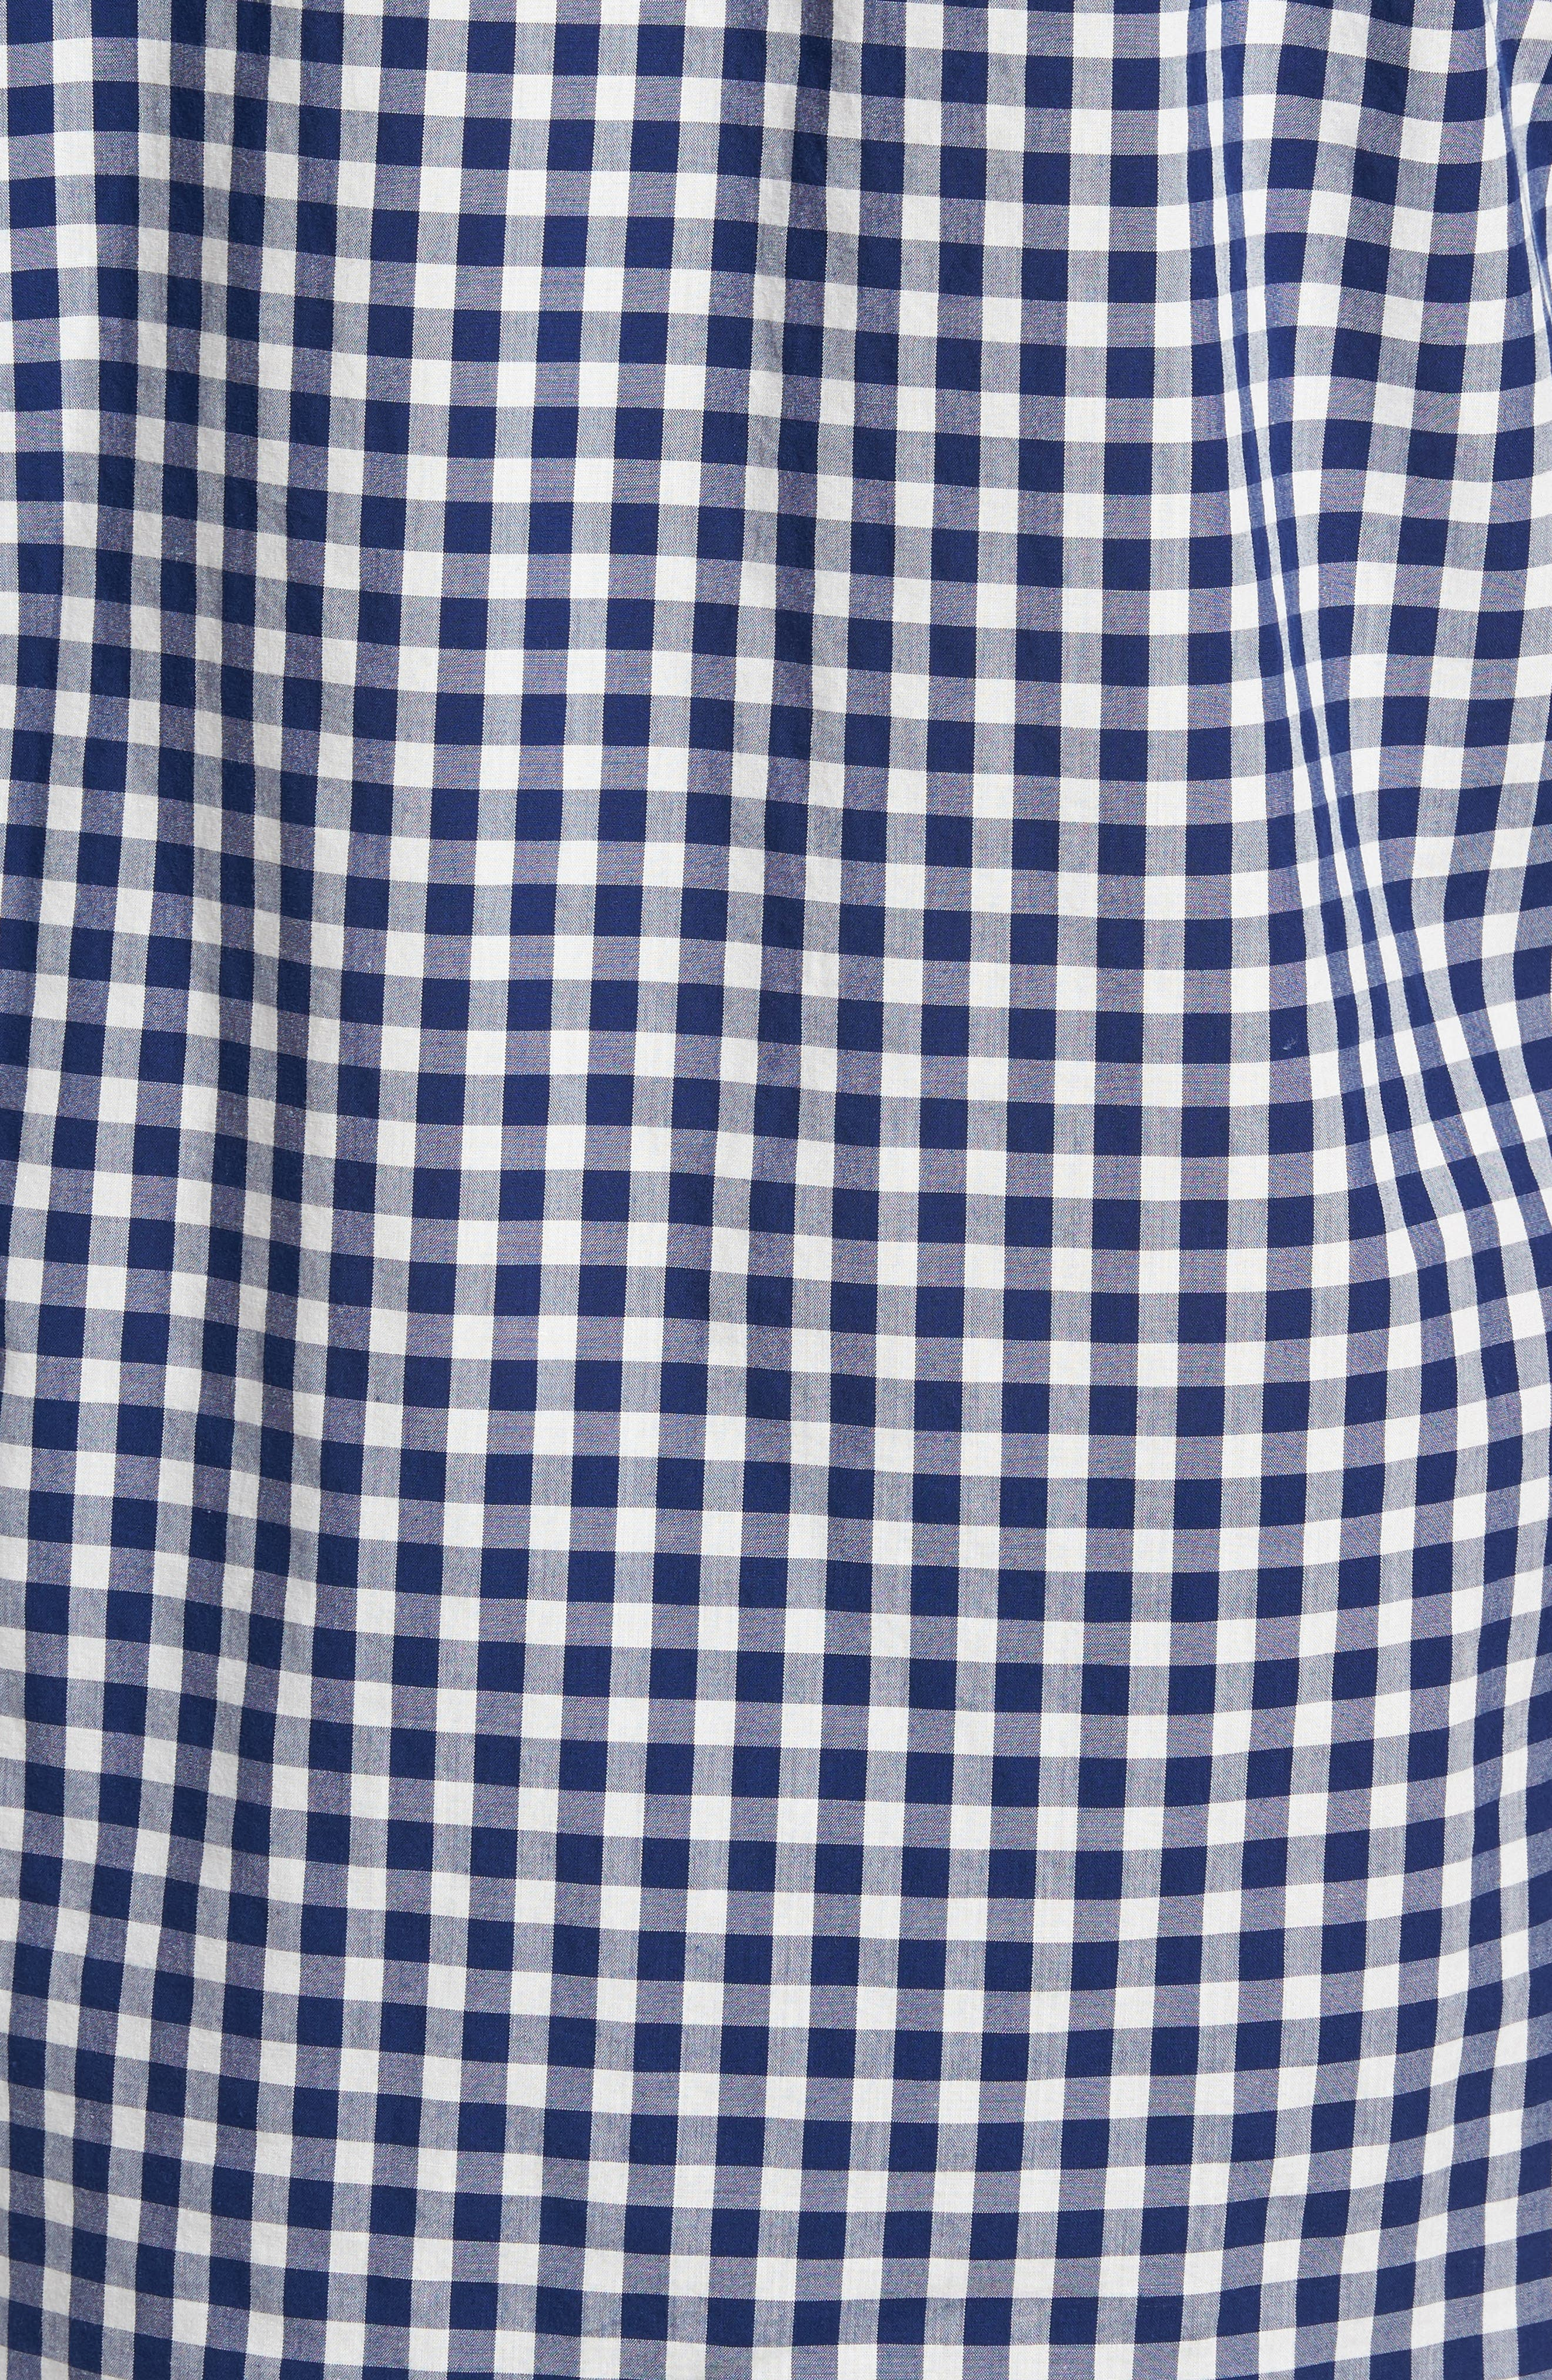 Summerweight Slim Fit Check Sport Shirt,                             Alternate thumbnail 5, color,                             Canyon Gingham - Blue Depths